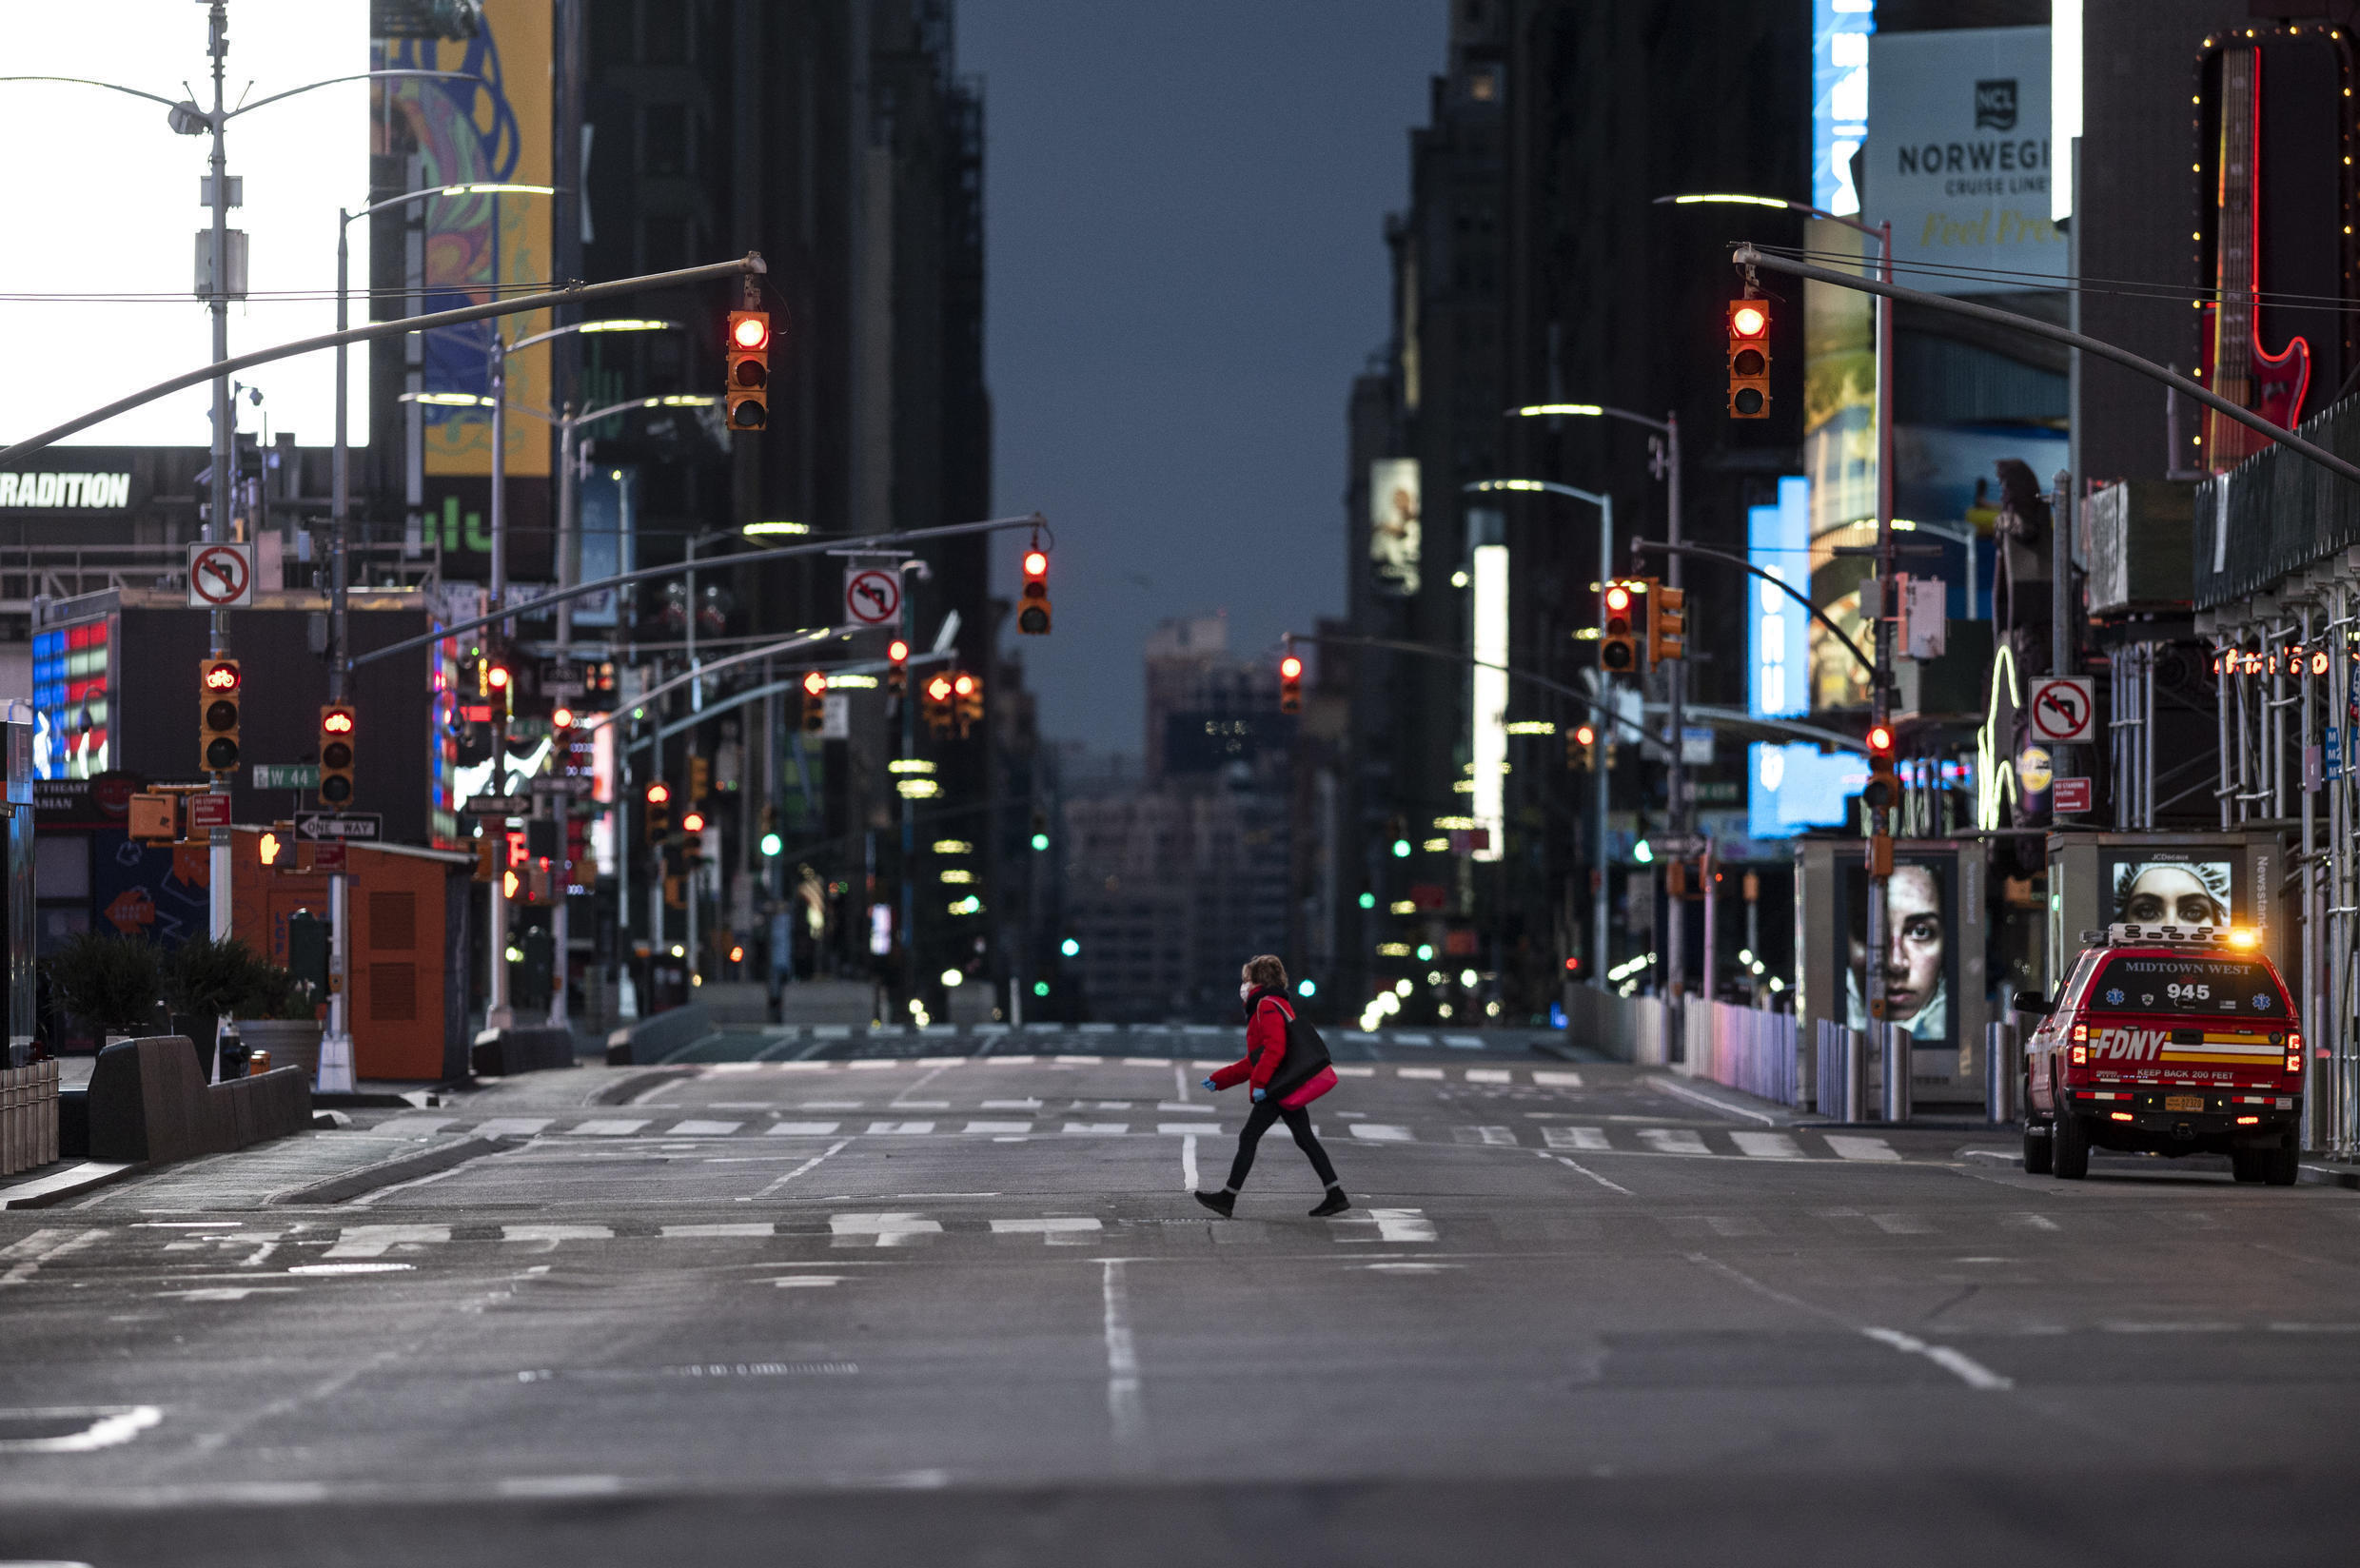 A woman walks through an almost-deserted Times Square in the early morning hours on April 23, 2020, in New York City, USA.